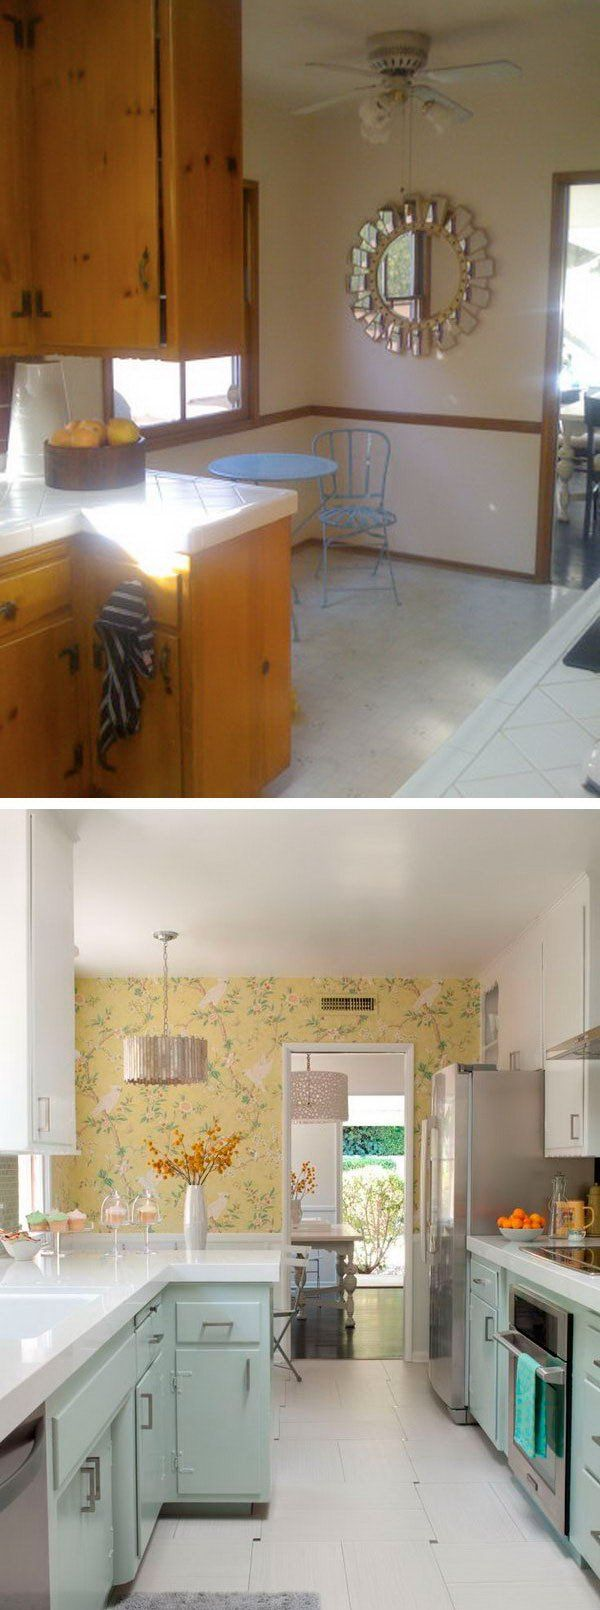 before and after 25 budget friendly kitchen makeover ideas - Affordable Kitchen Remodels